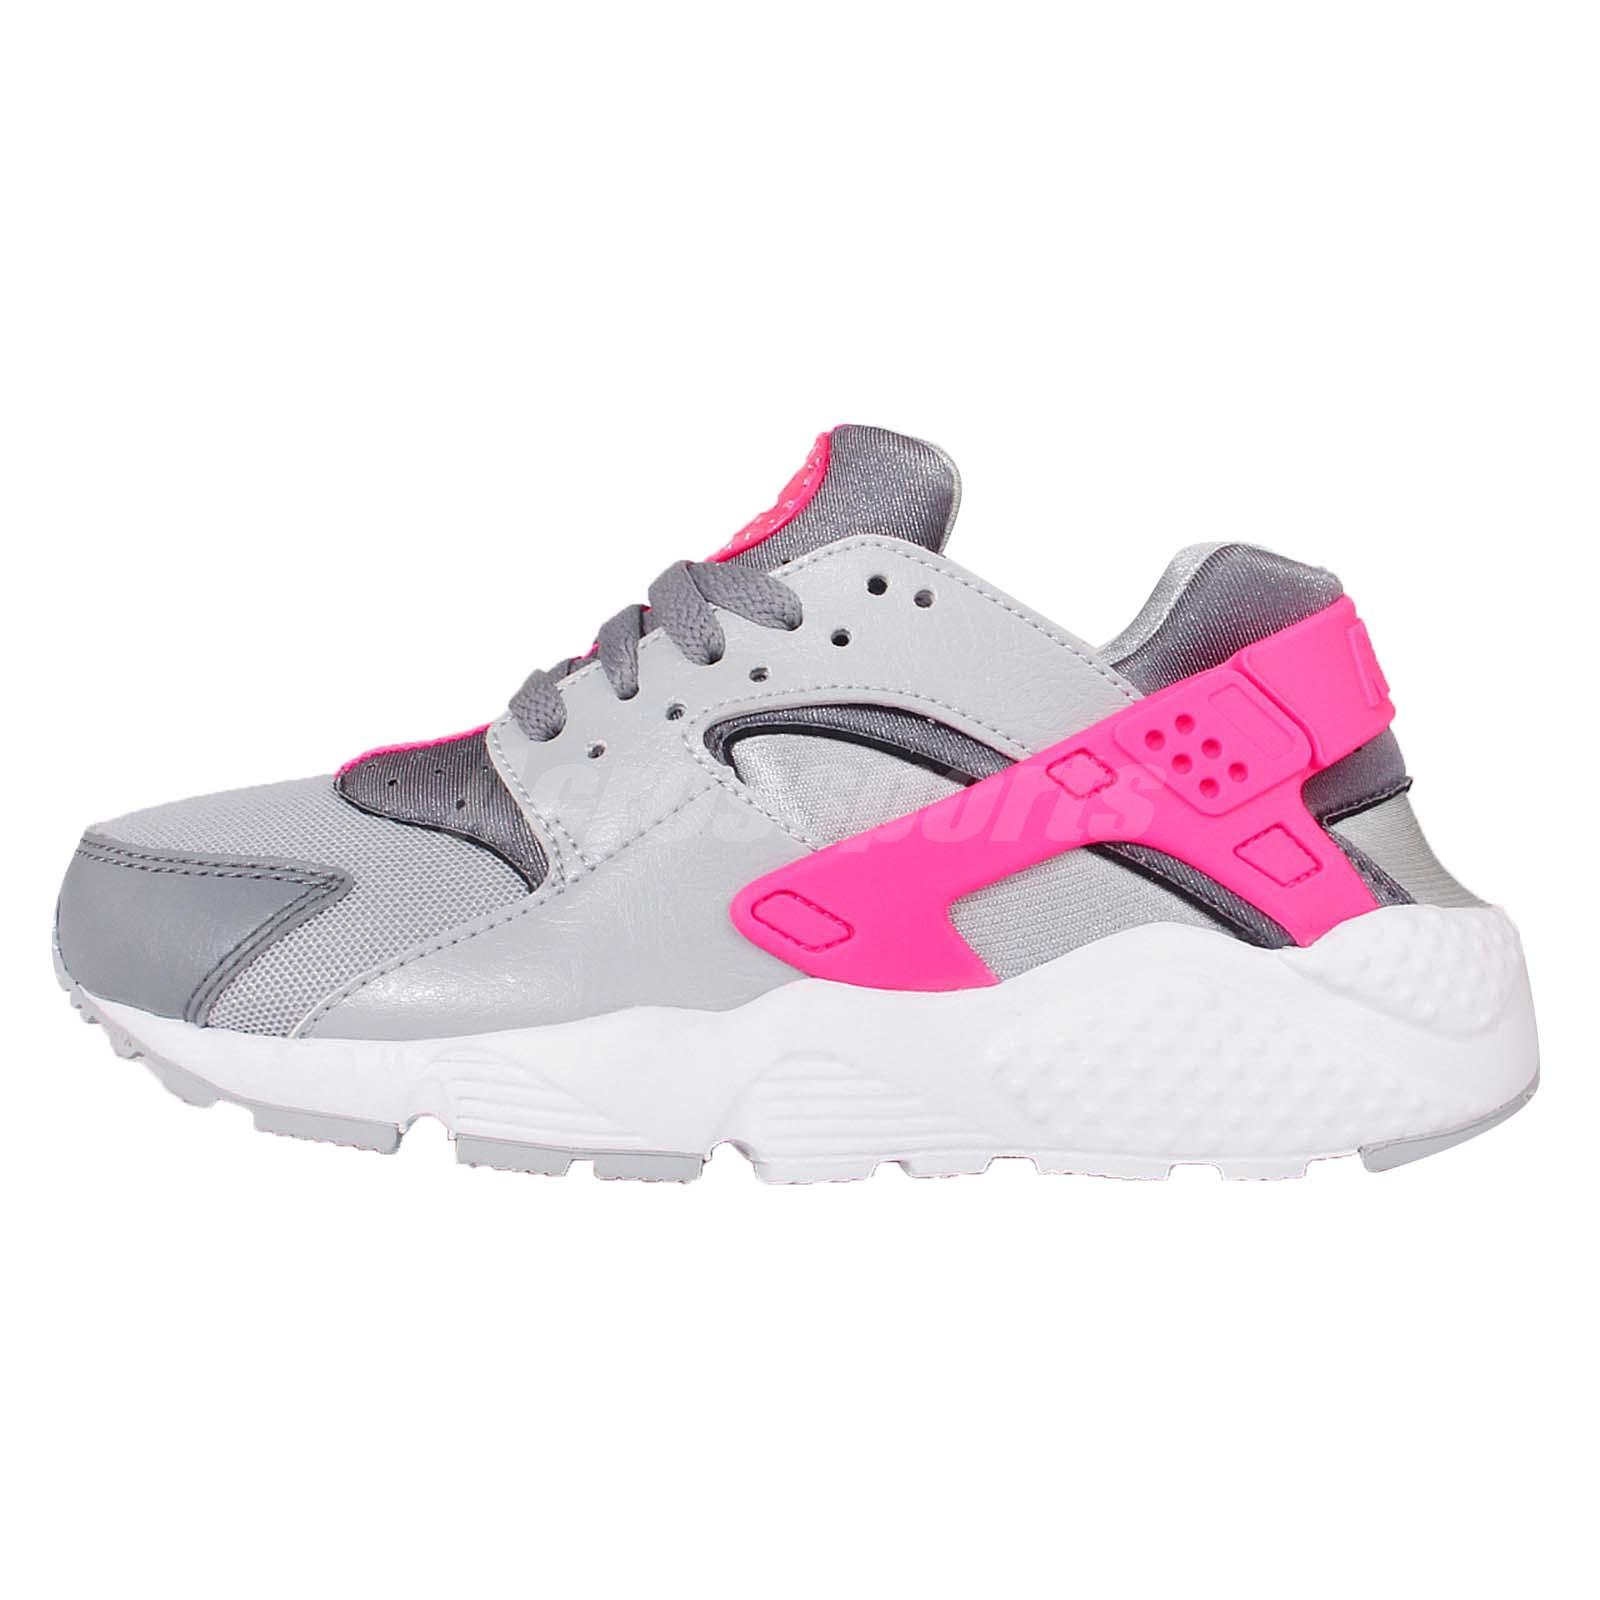 buy online d616f ea89d ... order huarache nike shoes for kids 4d743 ca056